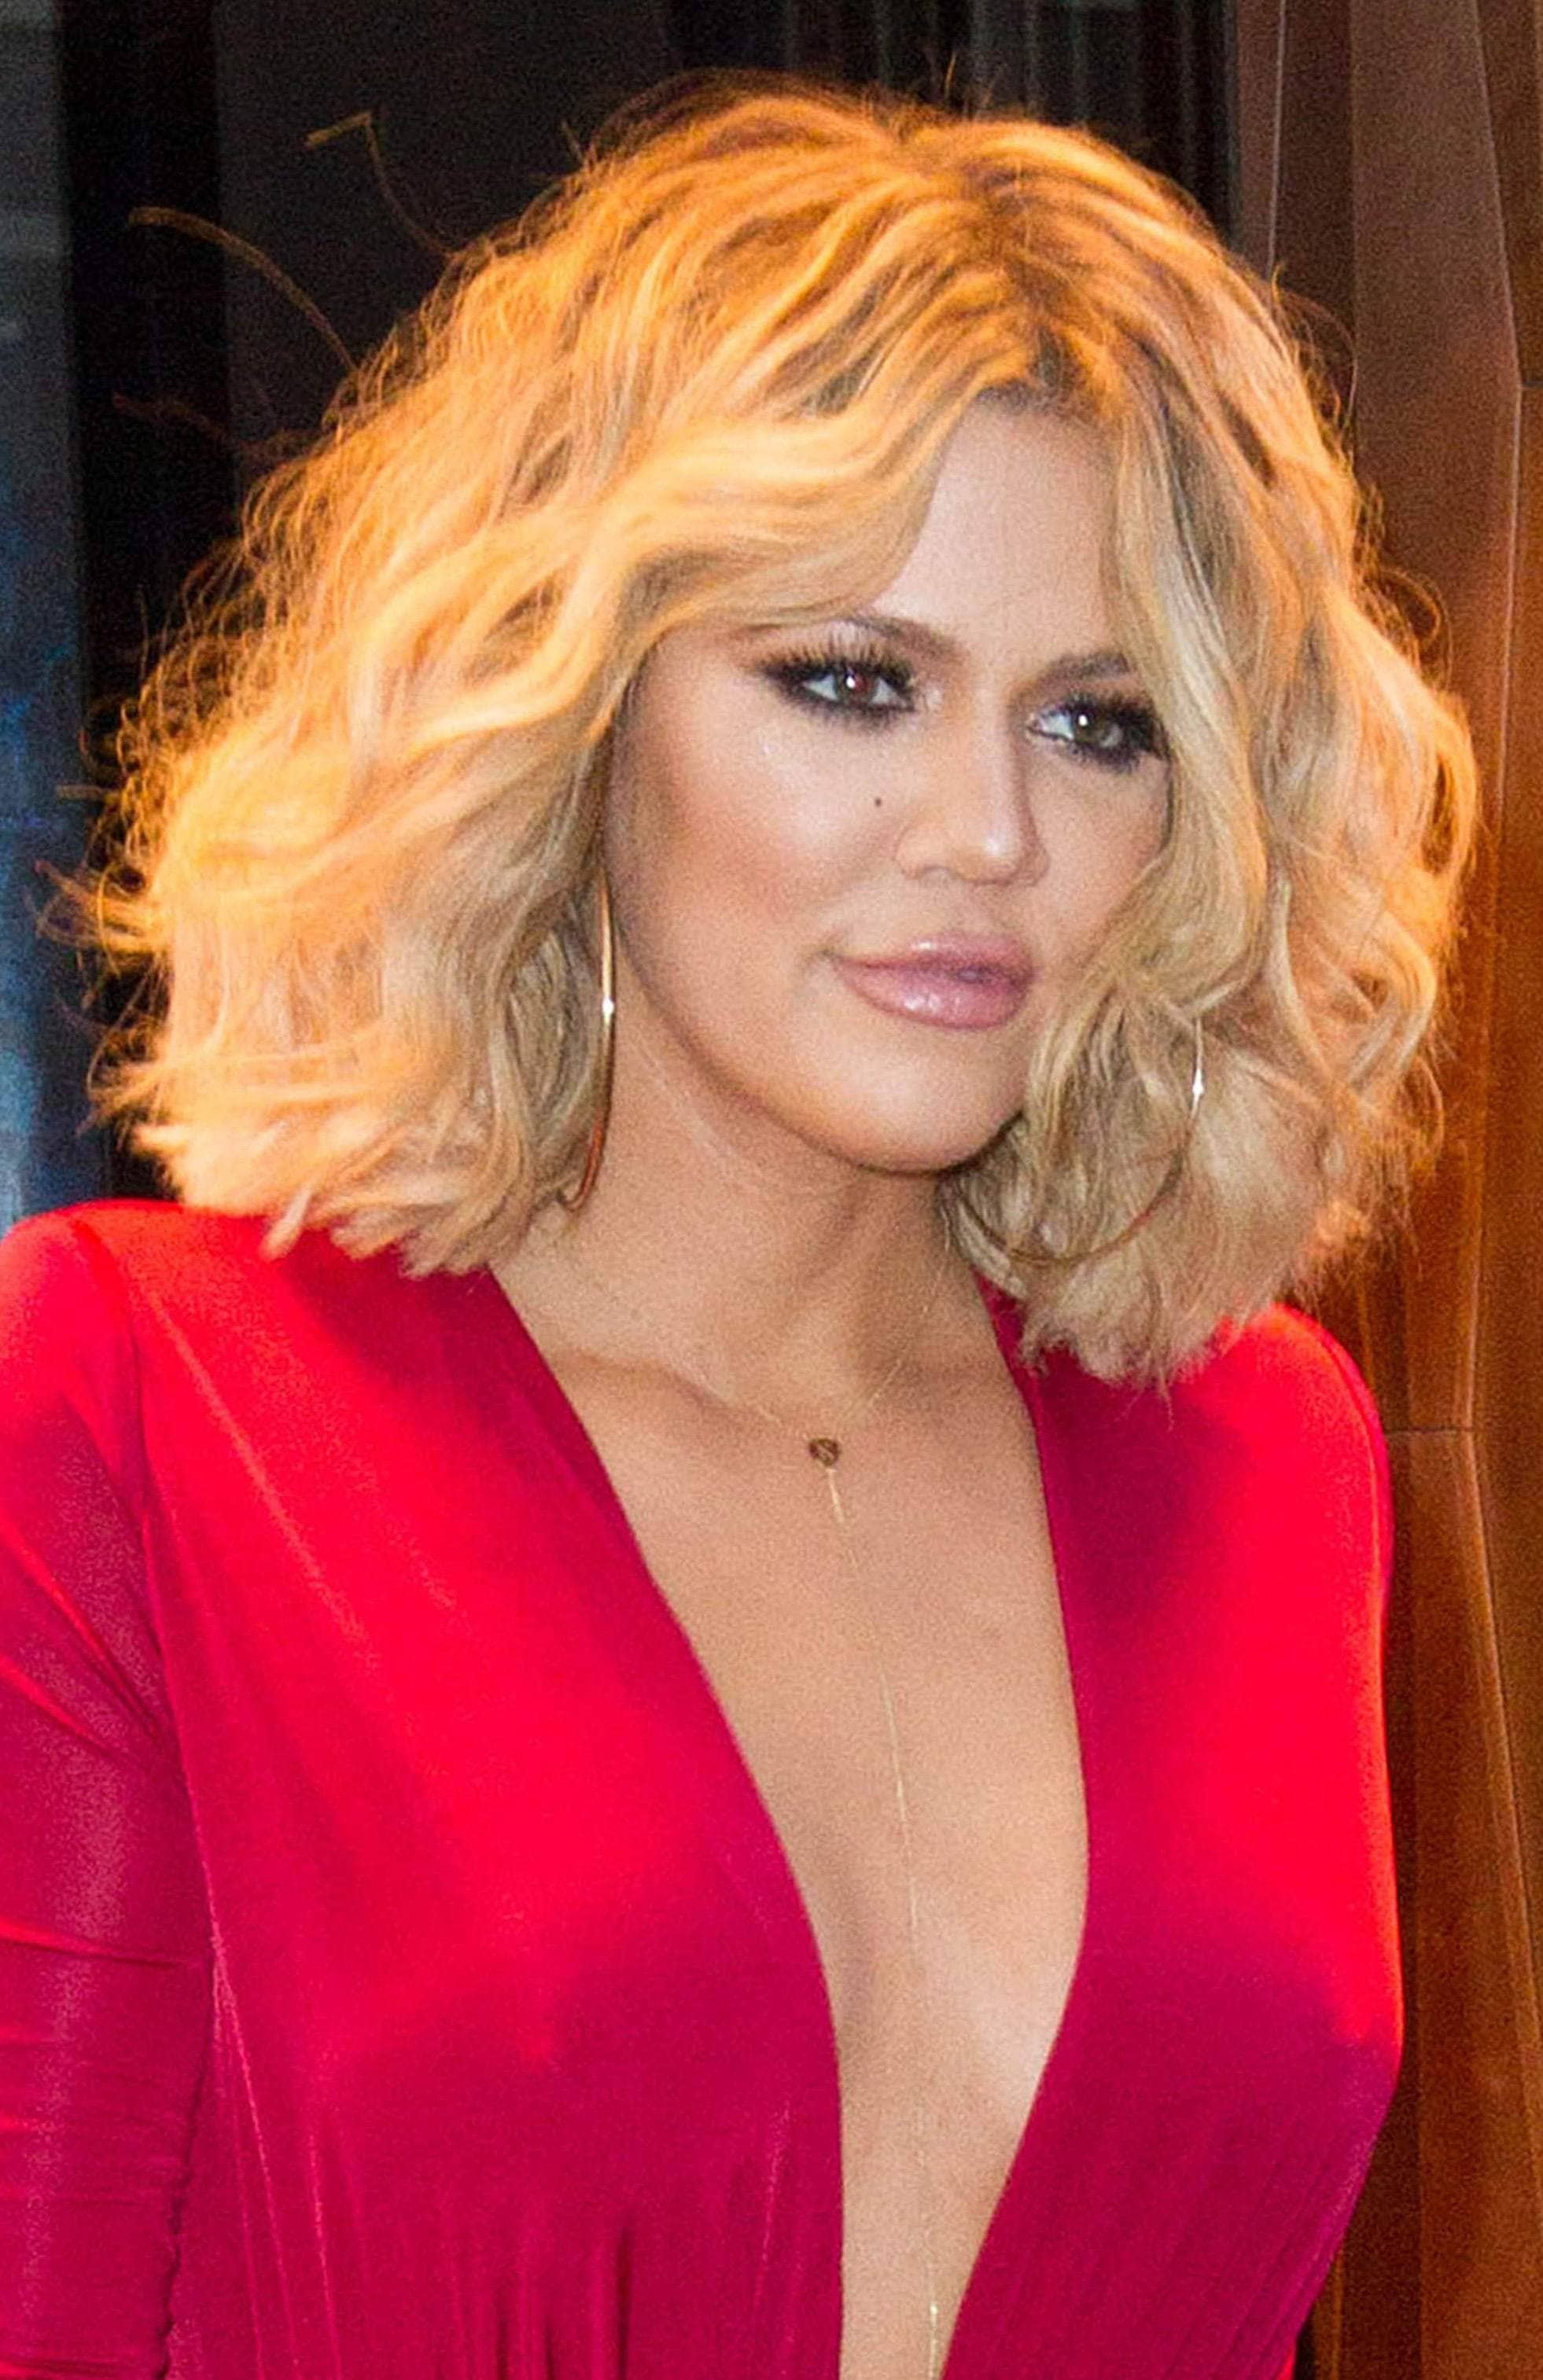 Khloe Kardashian with cury bob hair in all red